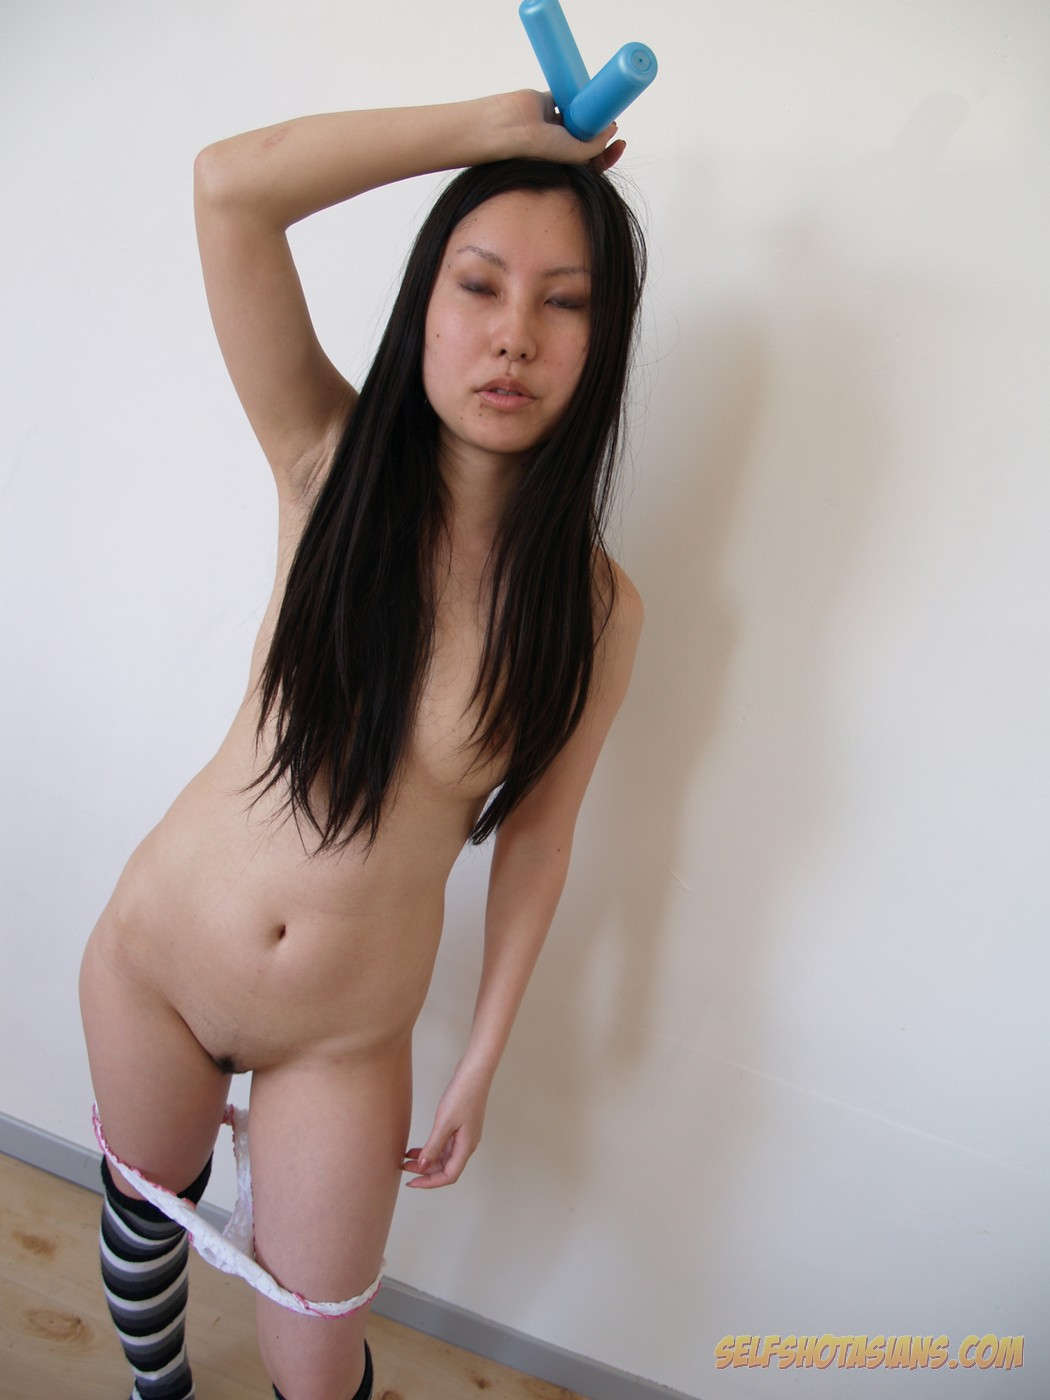 wild-pussy-movies-strong-pussy-porn